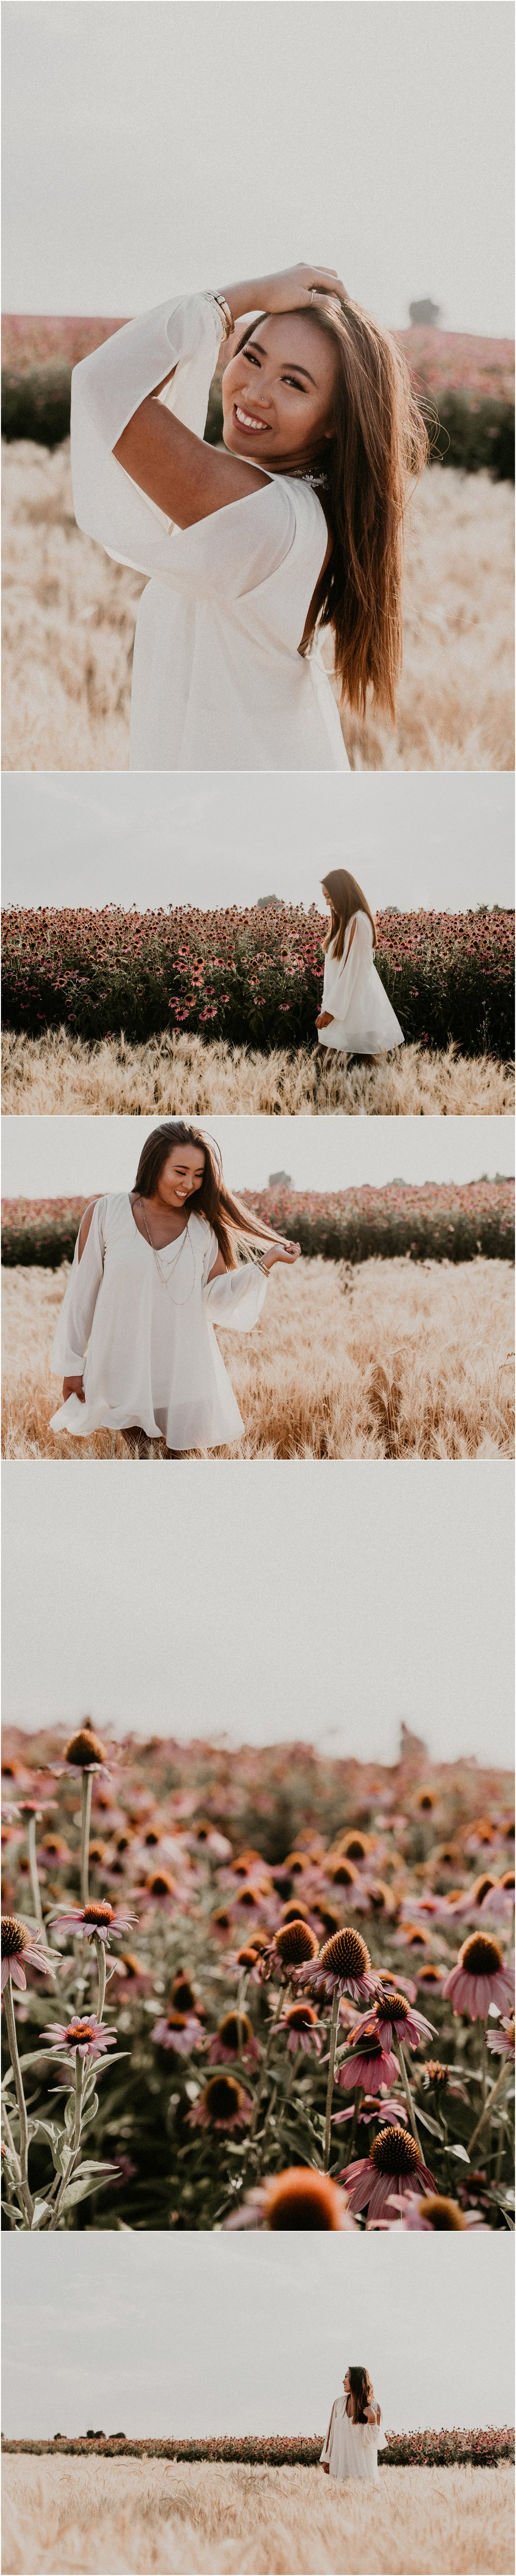 Boise Senior Photographer Makayla Madden Photography Wildflower Field Purple Boho Free Spirit Senior Pictures Gypsy Unique Fun Idaho Meridian Raw Real Free People Dress